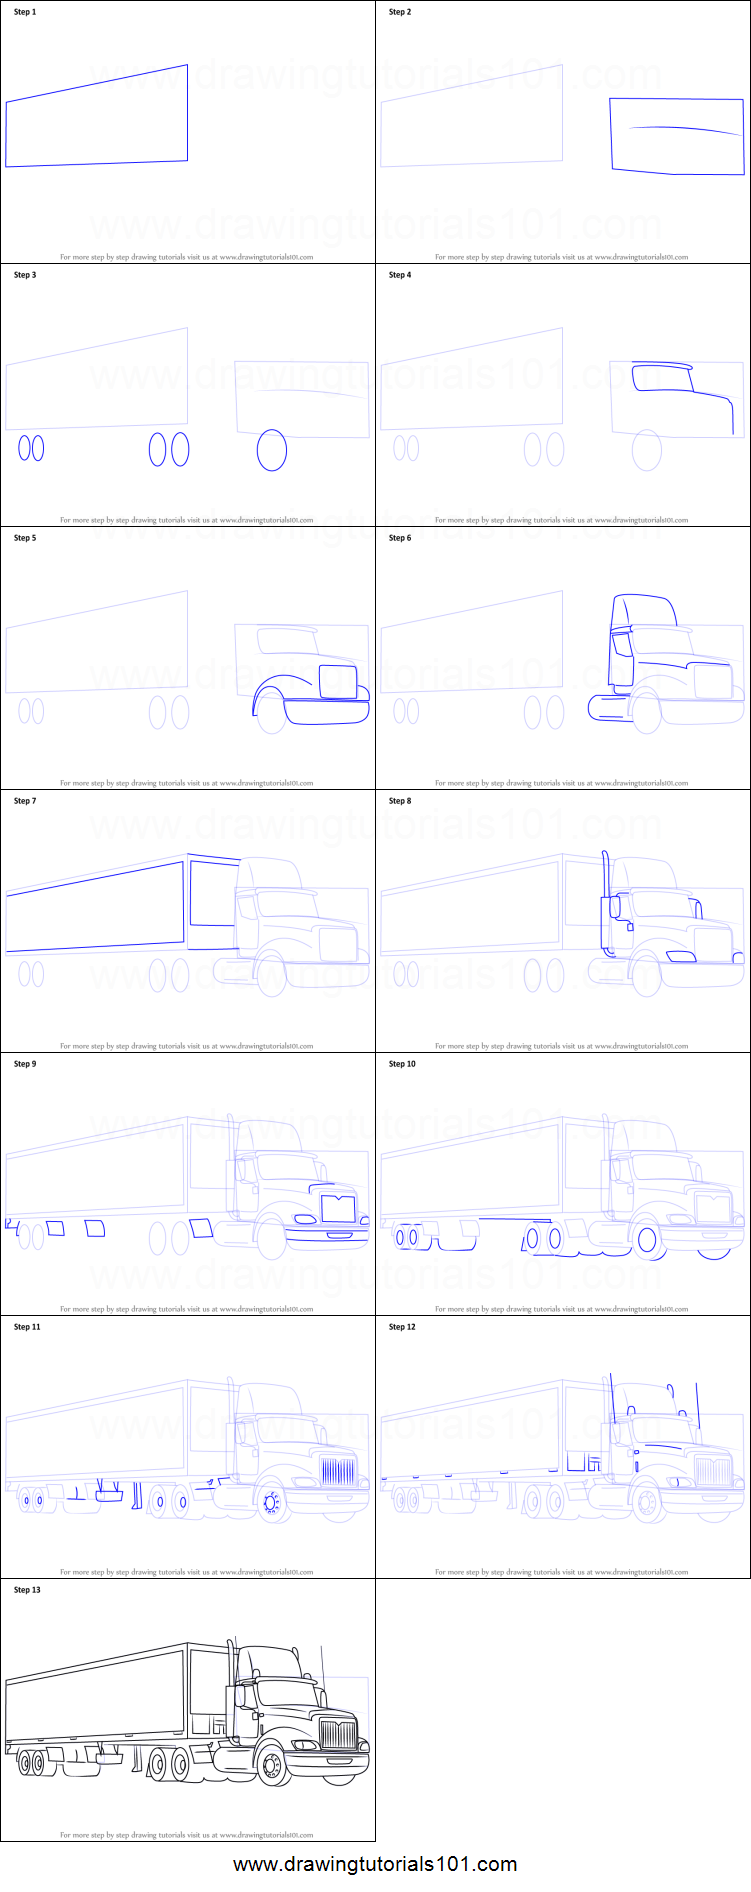 Uncategorized How To Draw A Truck Step By Step how to draw a truck and trailer printable step by drawing sheet drawingtutorials101 com